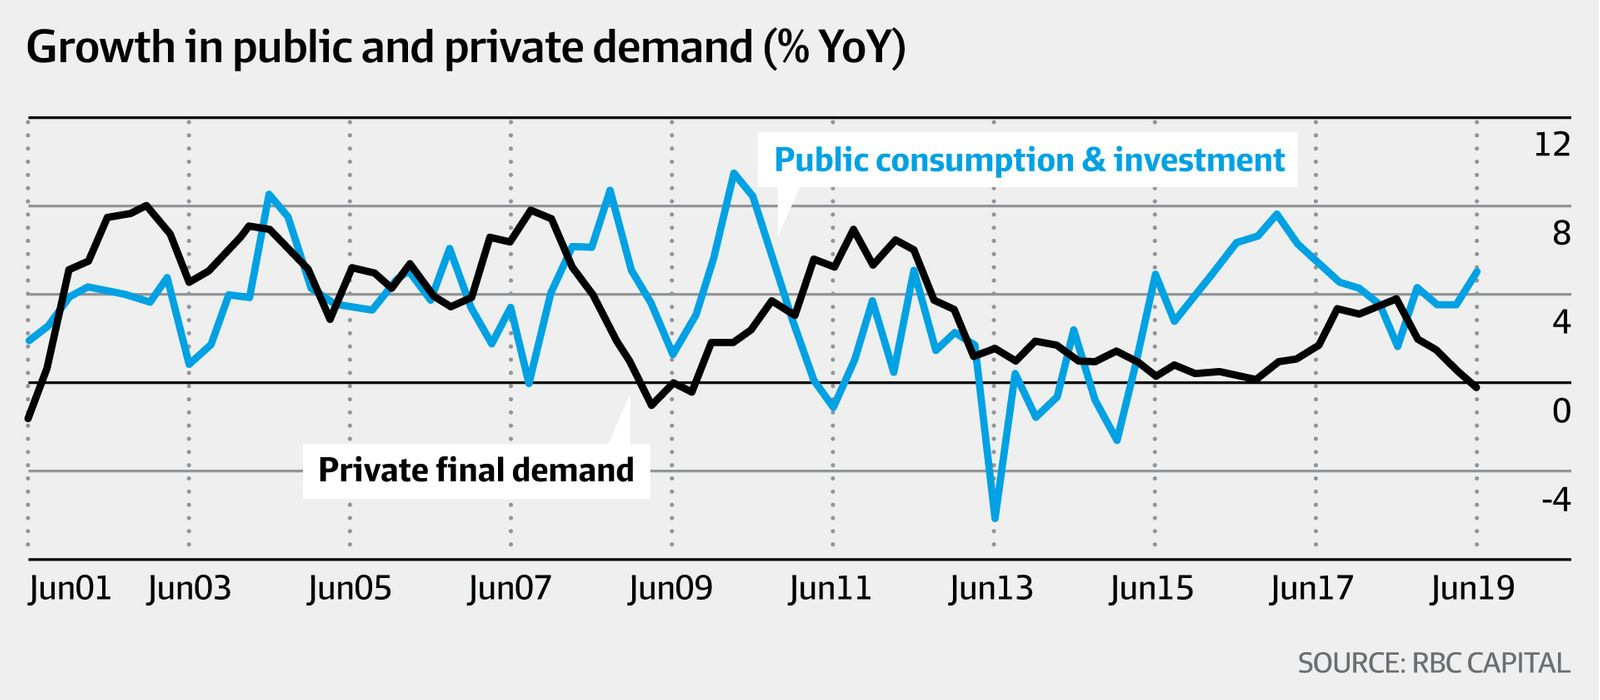 Growth in public and private demand (RBC Capital, AFR)